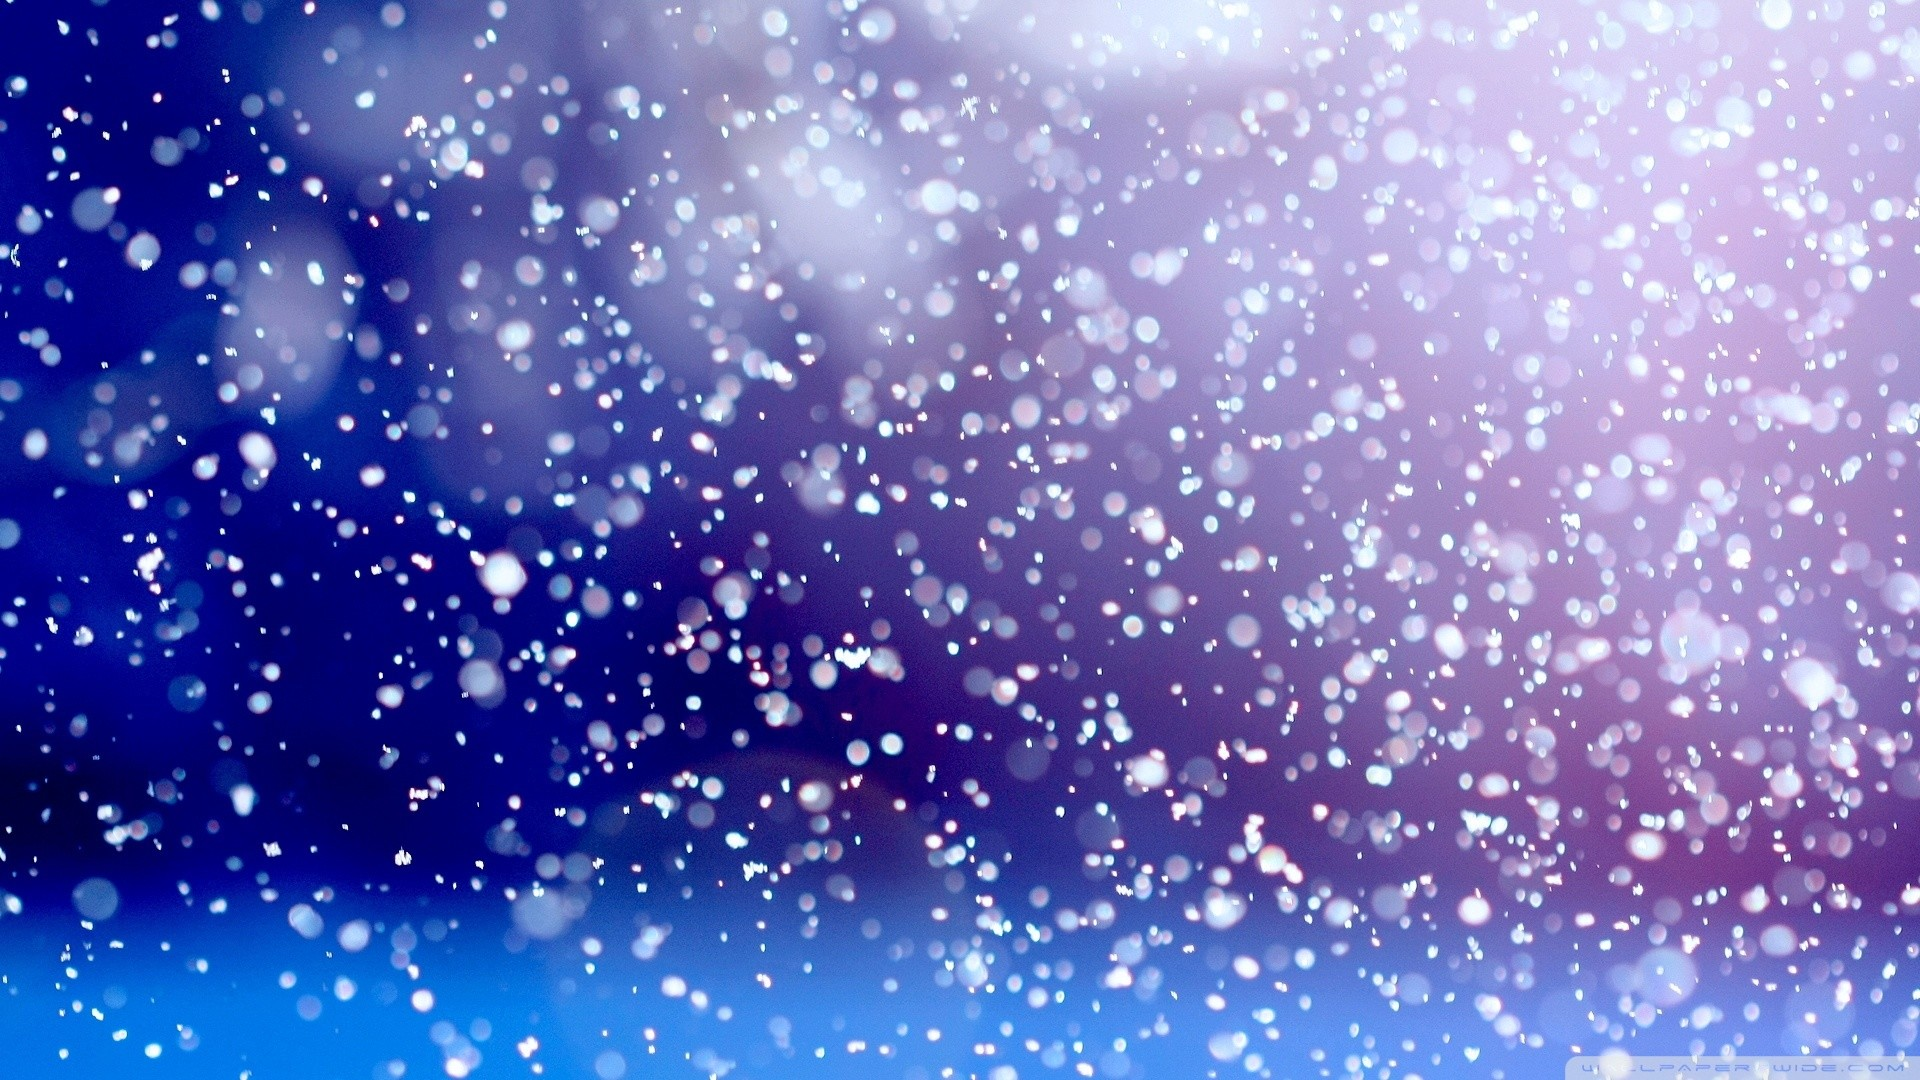 Falling snow wallpapers background 50 images 1920x1080 snowflakes falling wallpaper 1920x1080 snowflakes falling voltagebd Choice Image